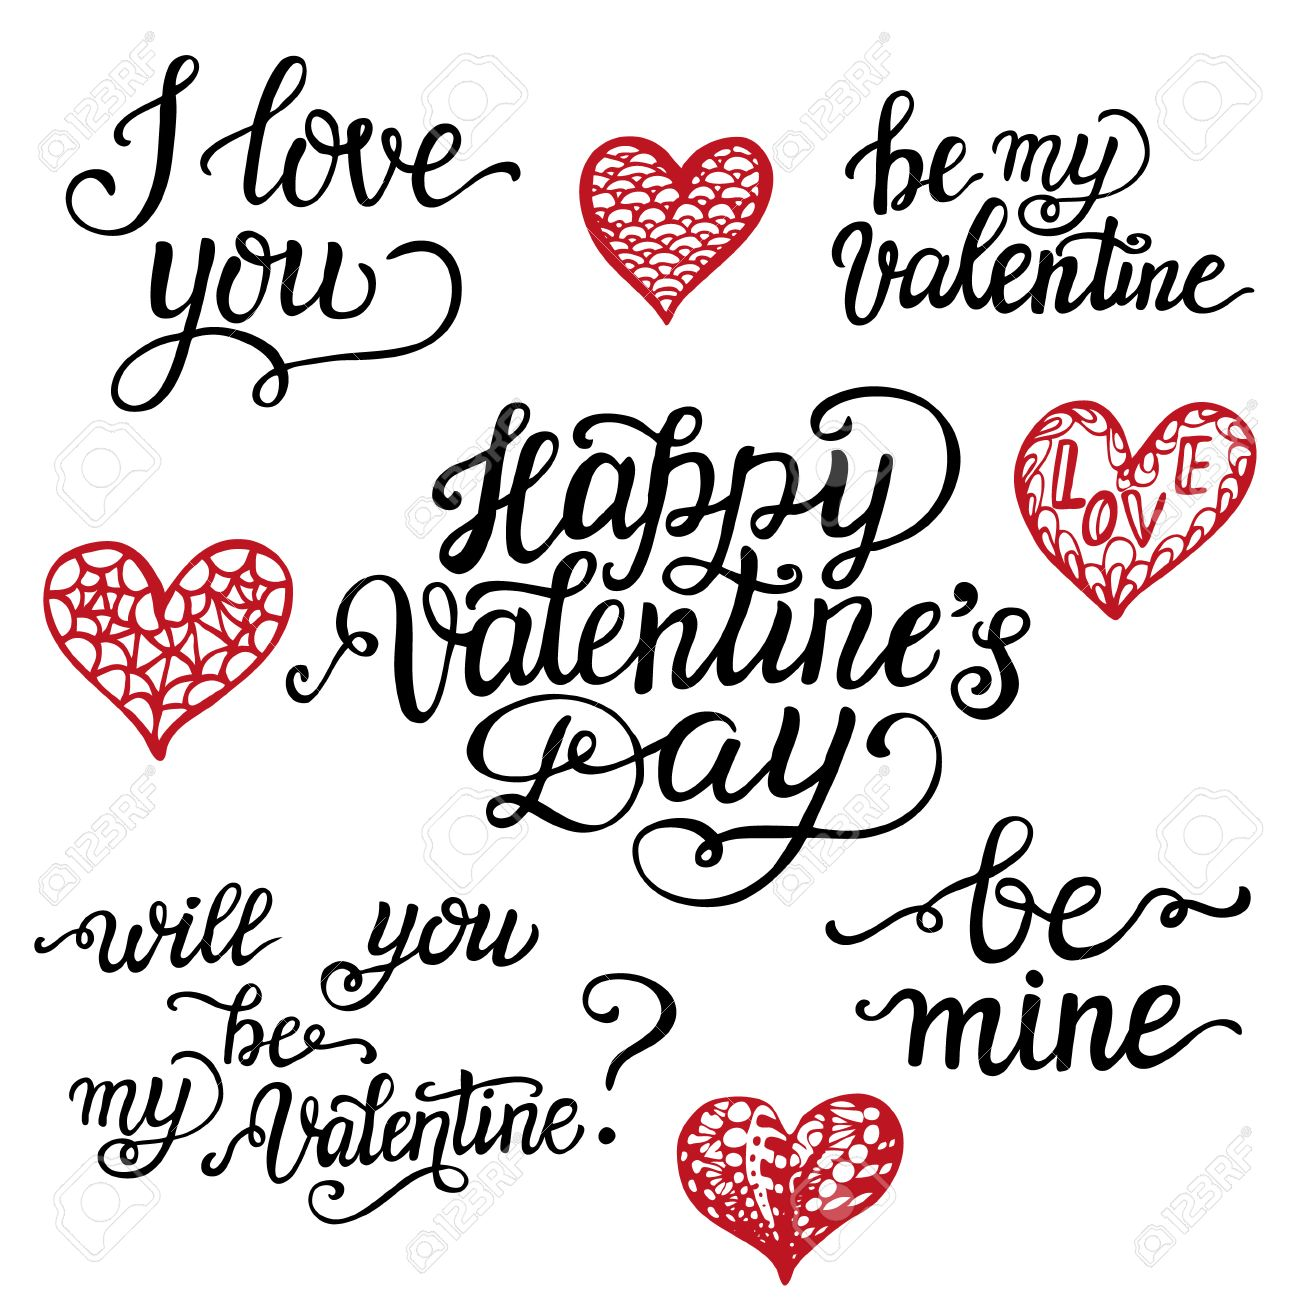 Romantic Quotes I Love You, Happy Valentine Day, Be